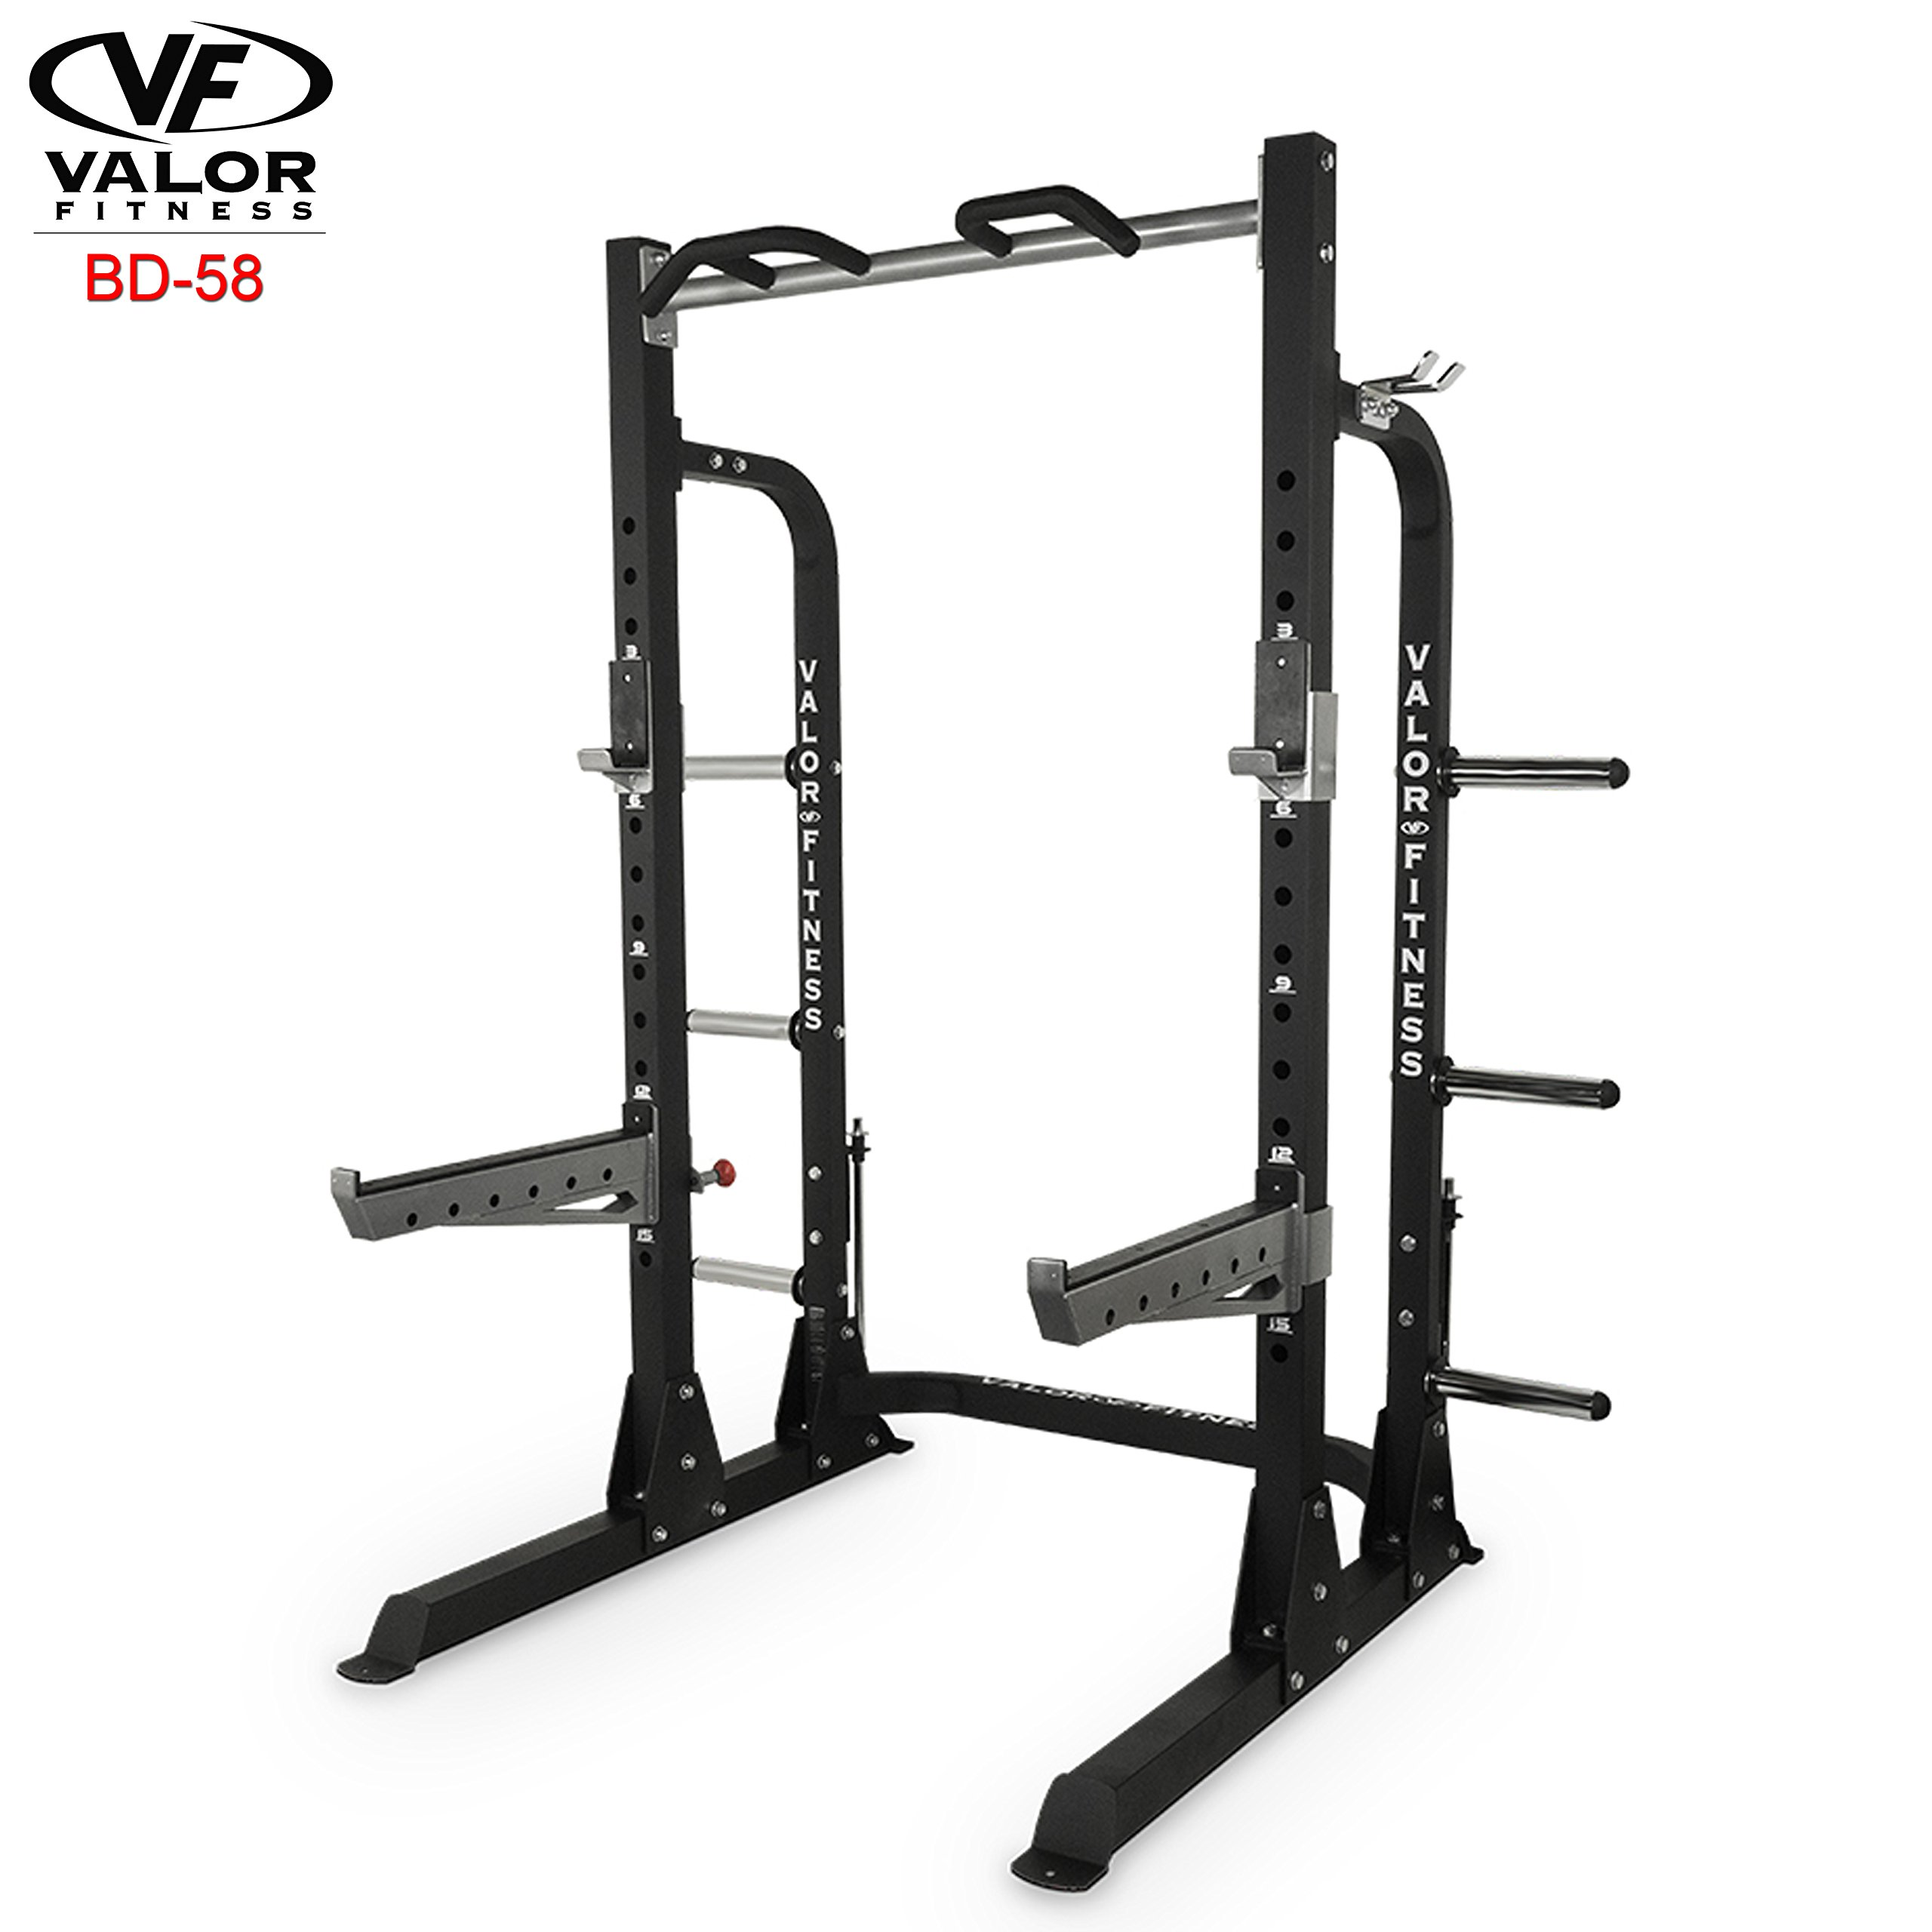 ValorPRO BD-58 Half Rack with Plate Storage by Valor Fitness